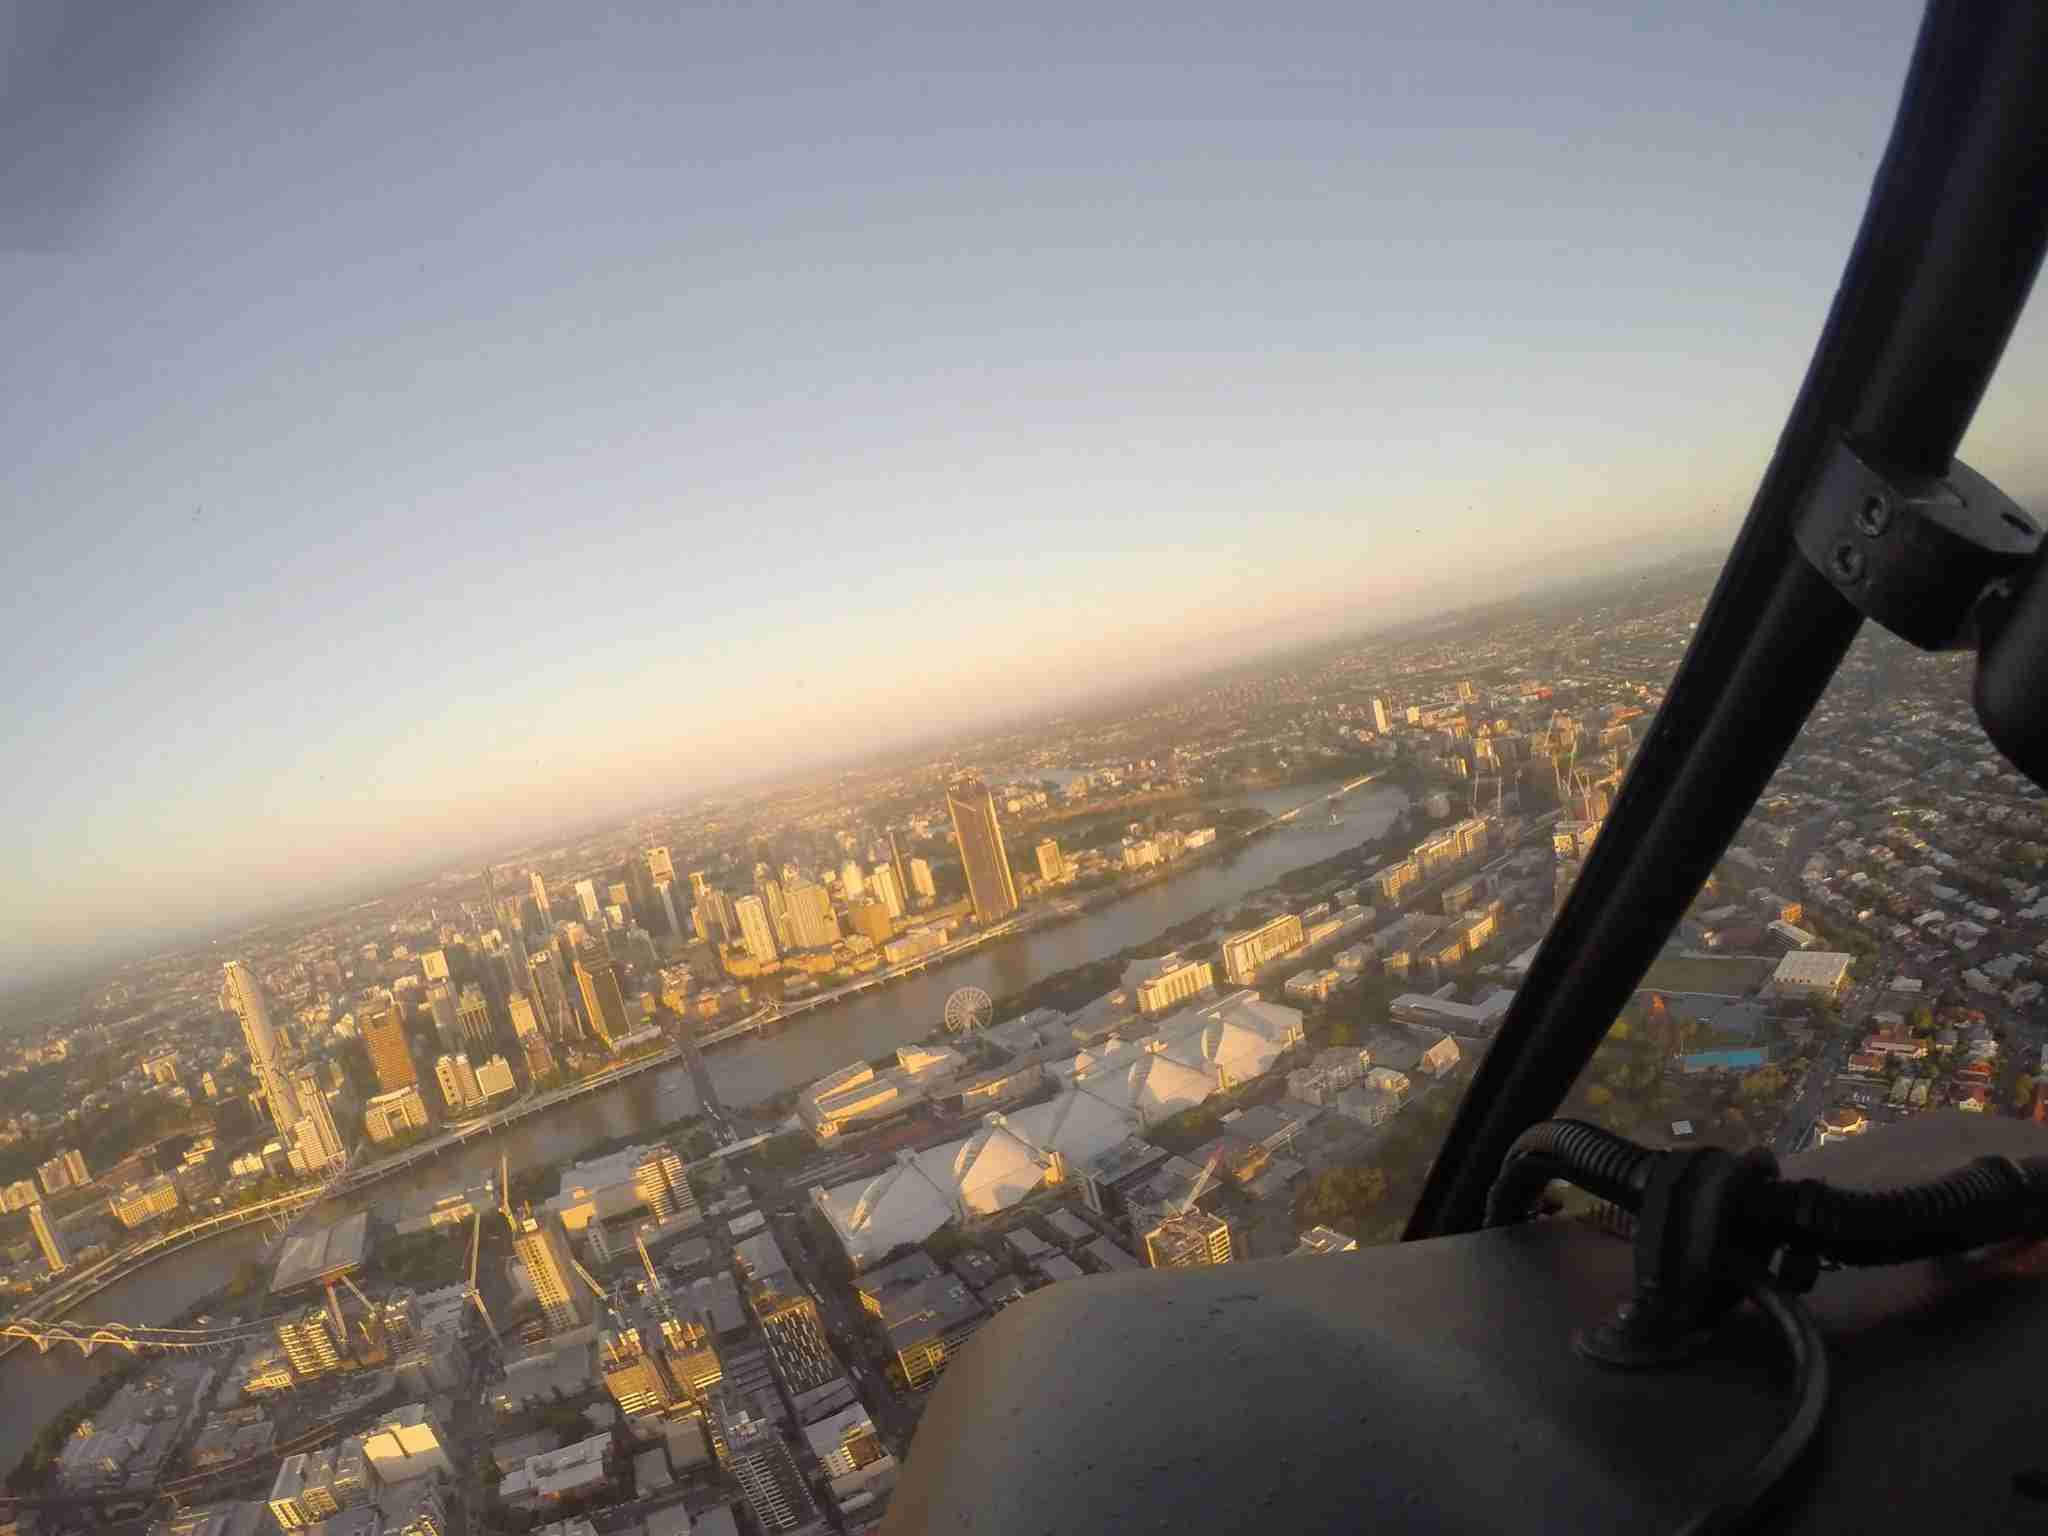 Suds with a view. Image courtesy of Pterodactyl Helicopters